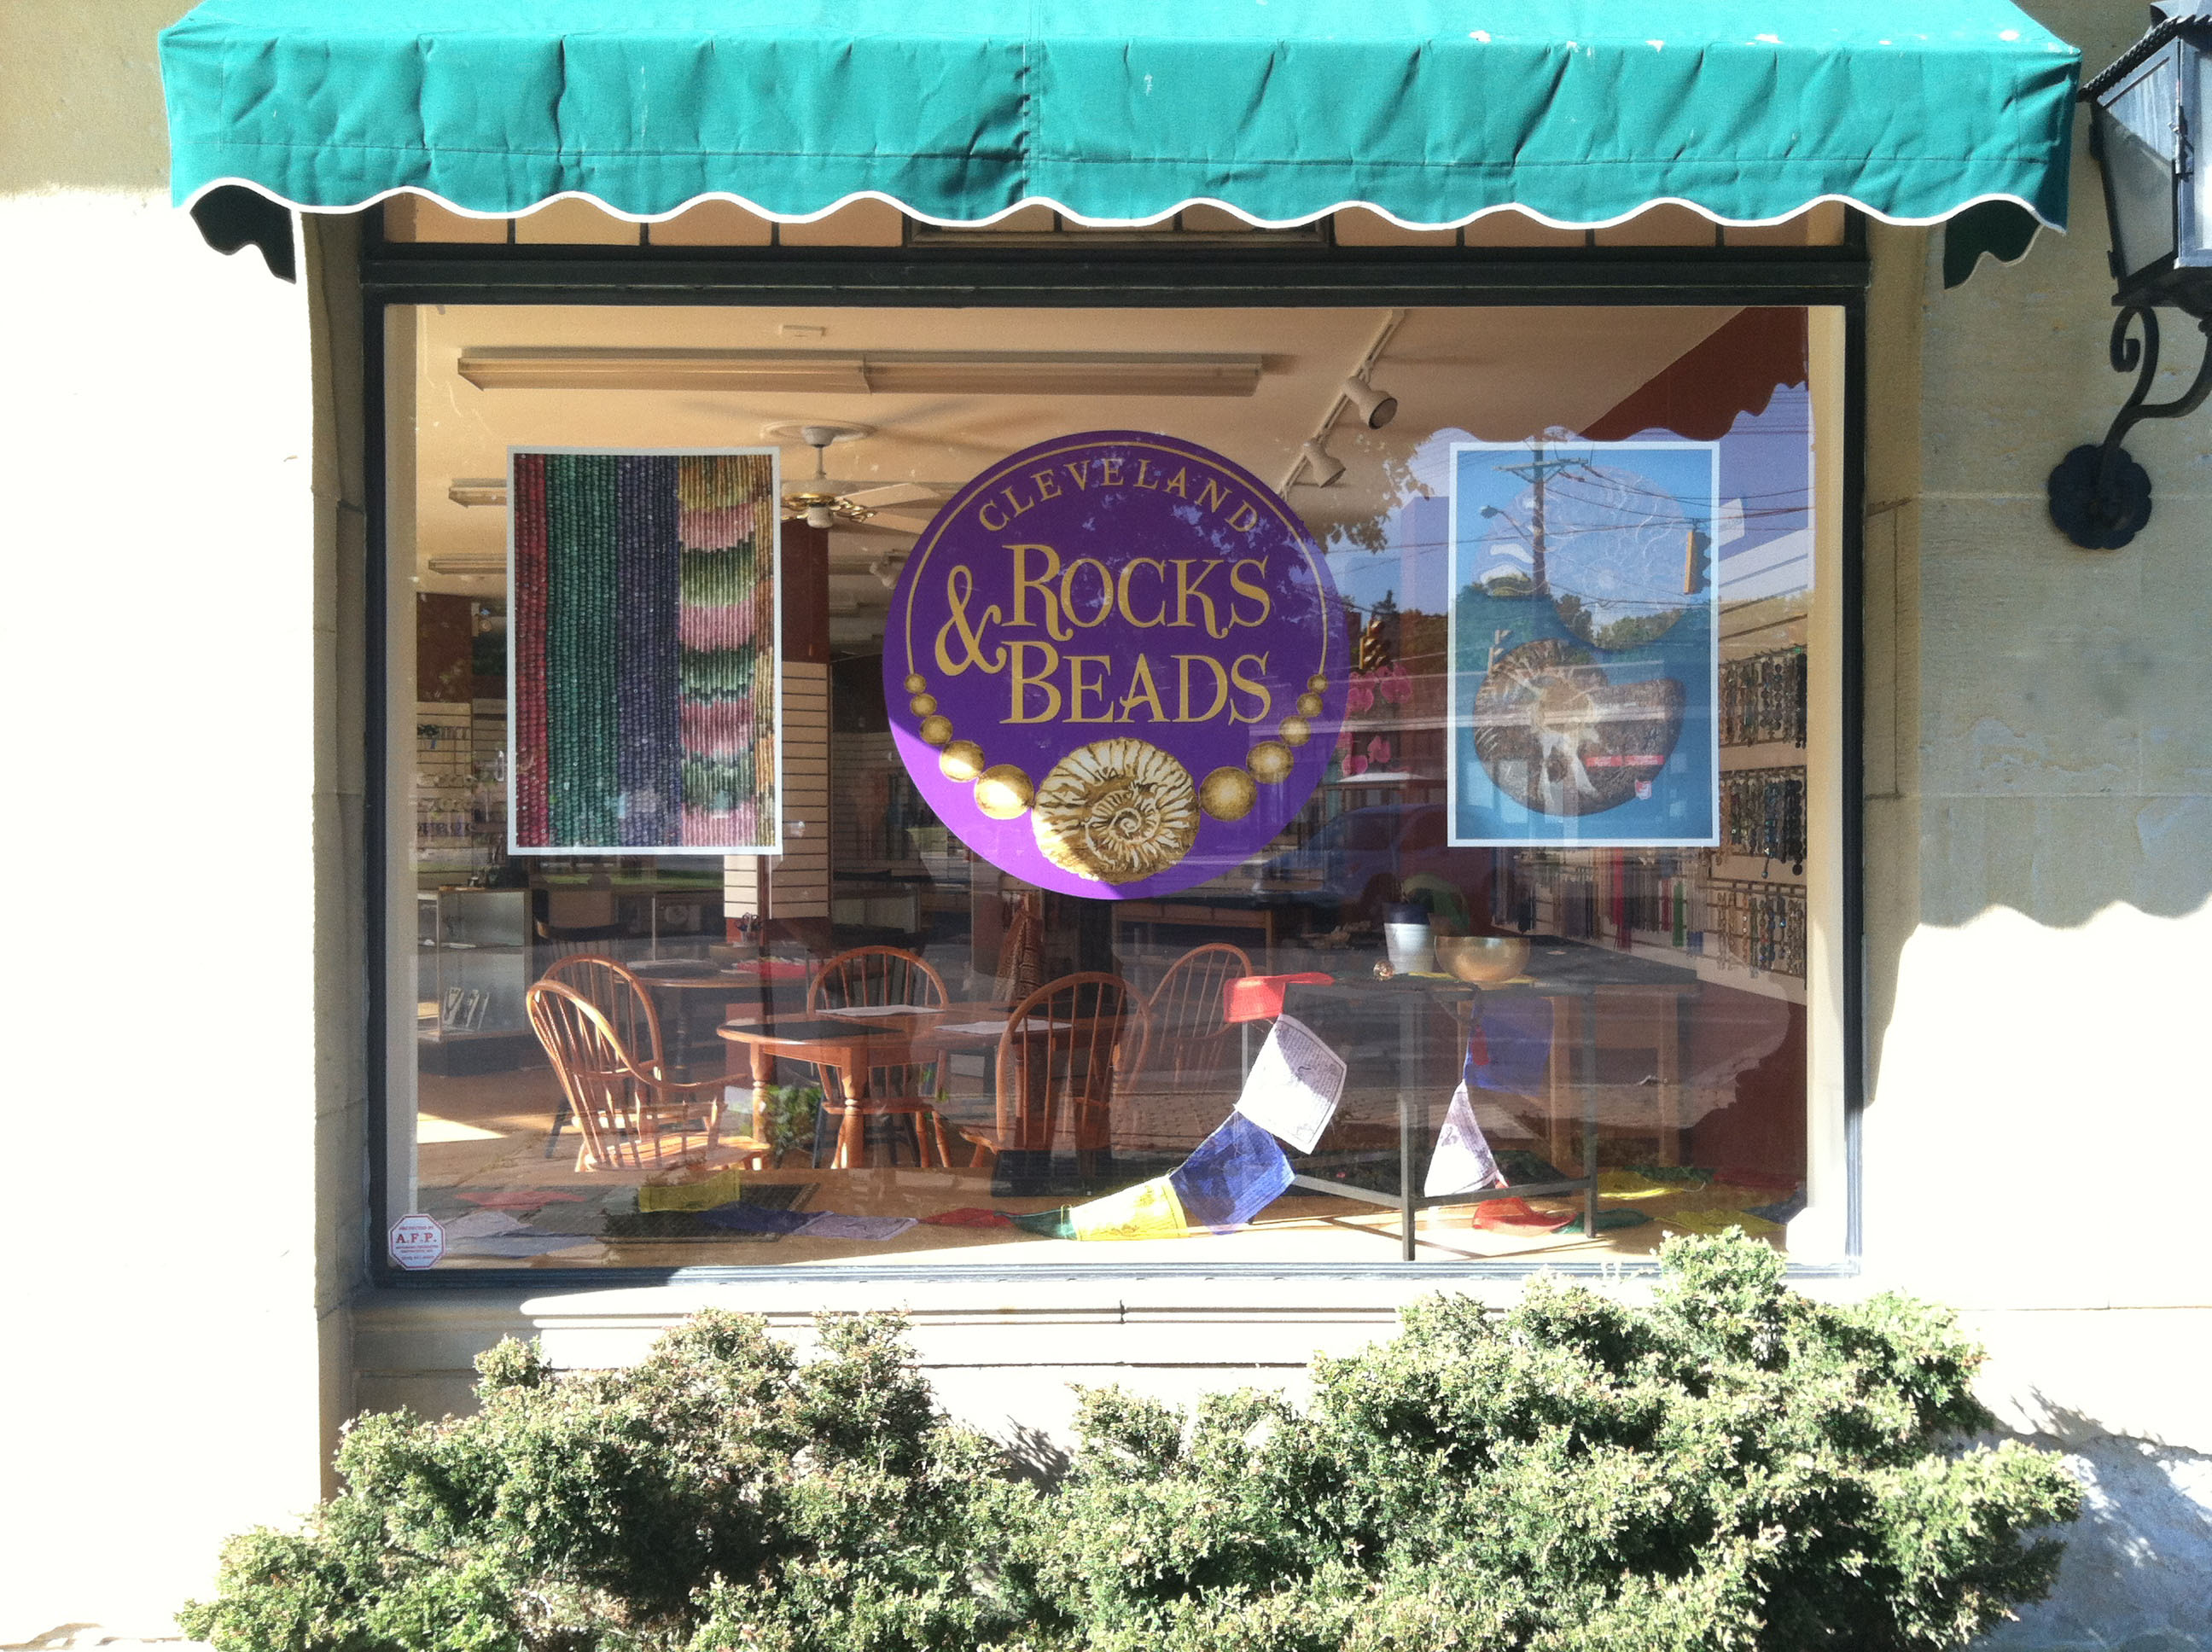 Cleveland Rocks and Beads Window